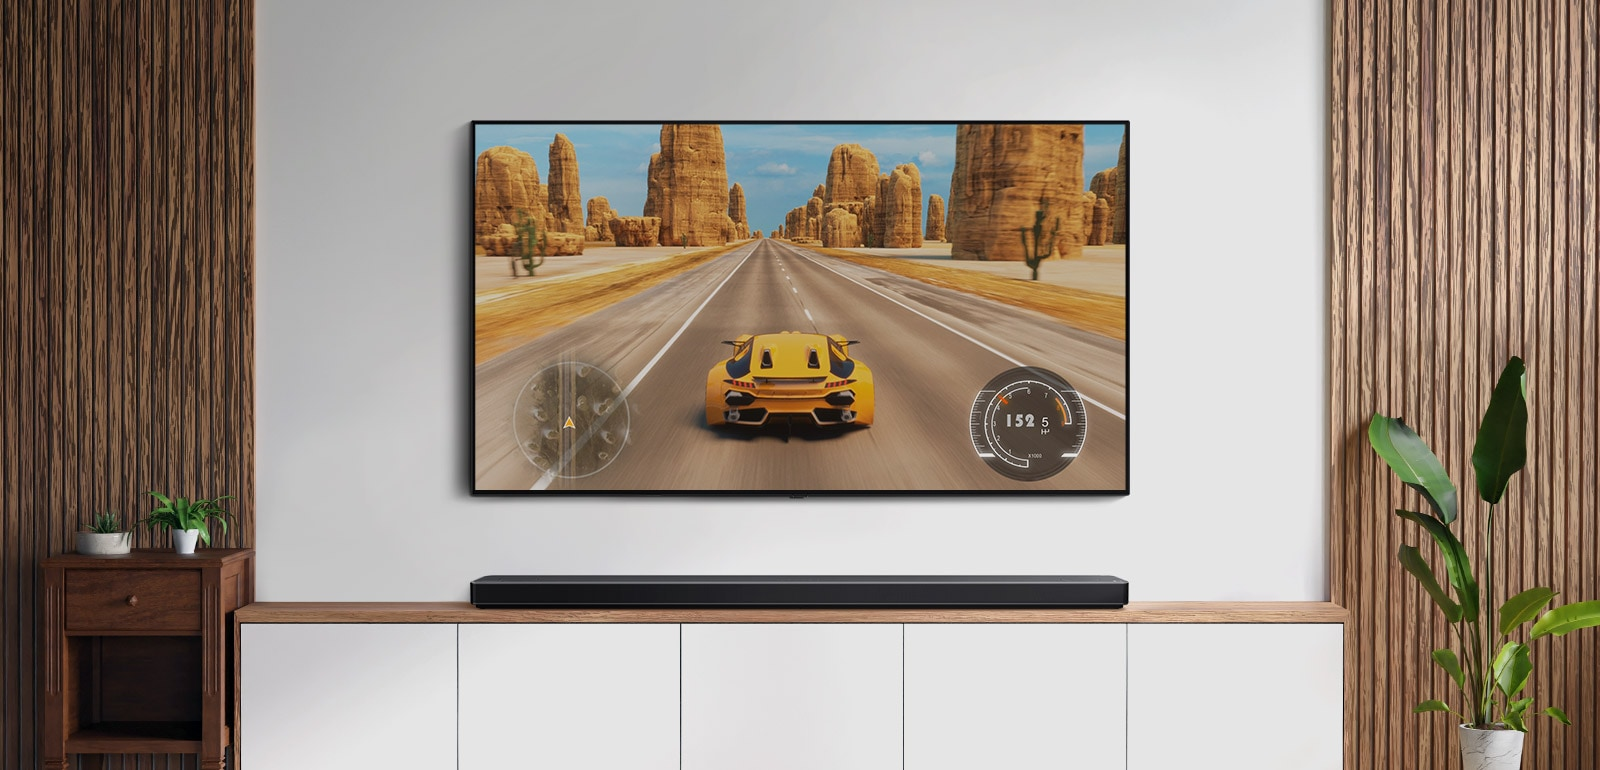 There is TV and a soundbar in a living room. A car racing game is on a TV screen. (play the video)